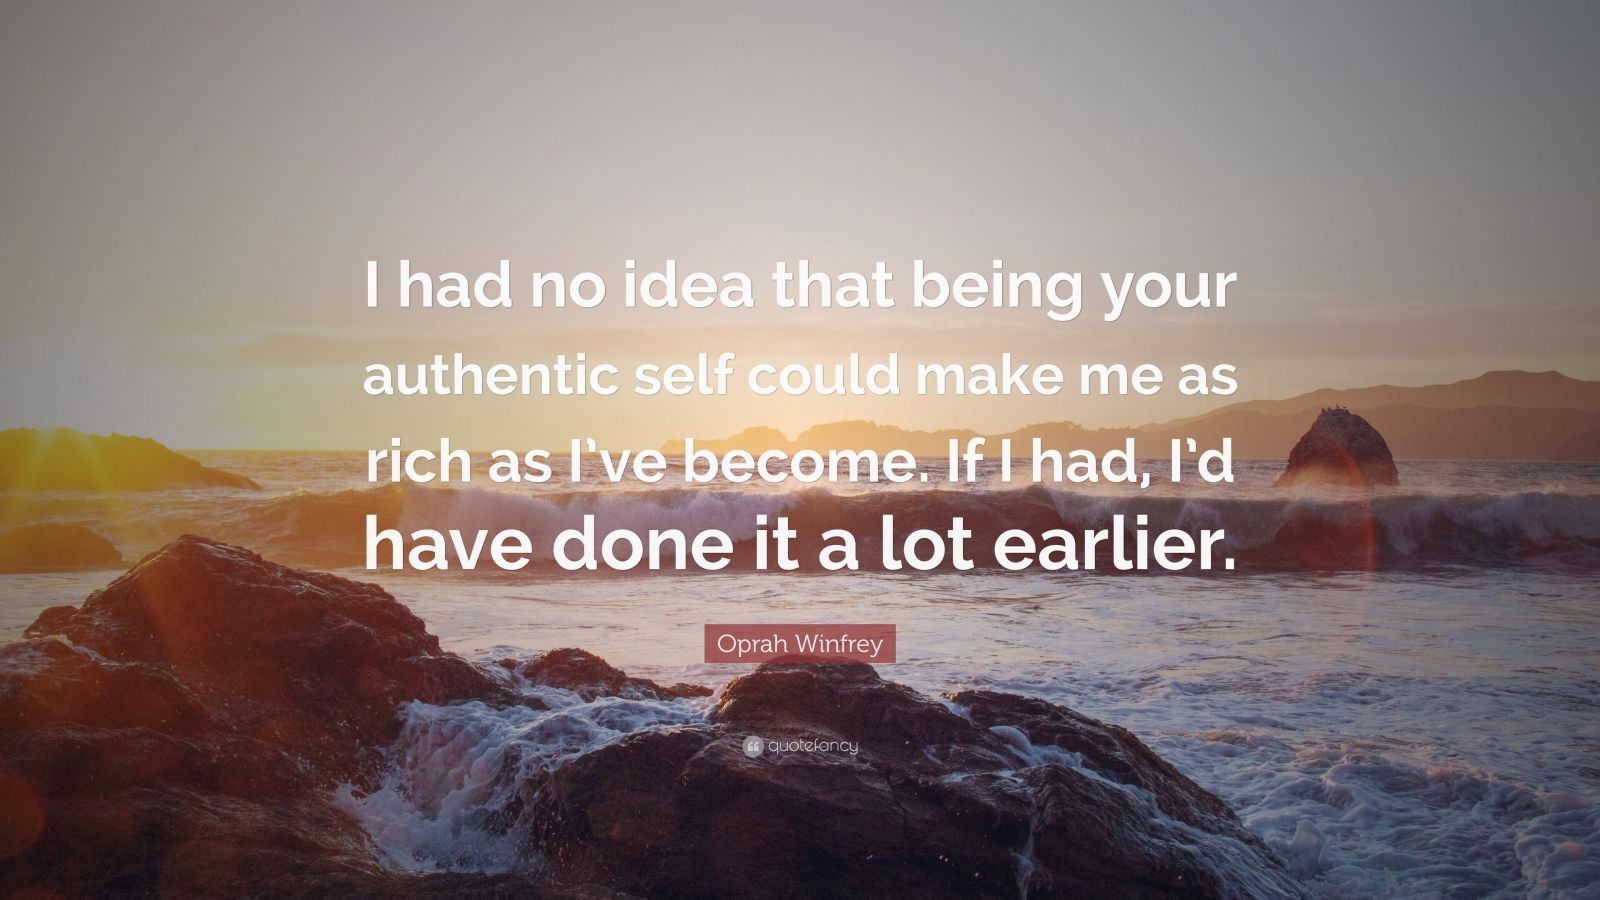 """Oprah Winfrey Quote: """"I had no idea that being your authentic self could make me as rich as I've become. If I had, I'd have done it a lot earlier."""""""